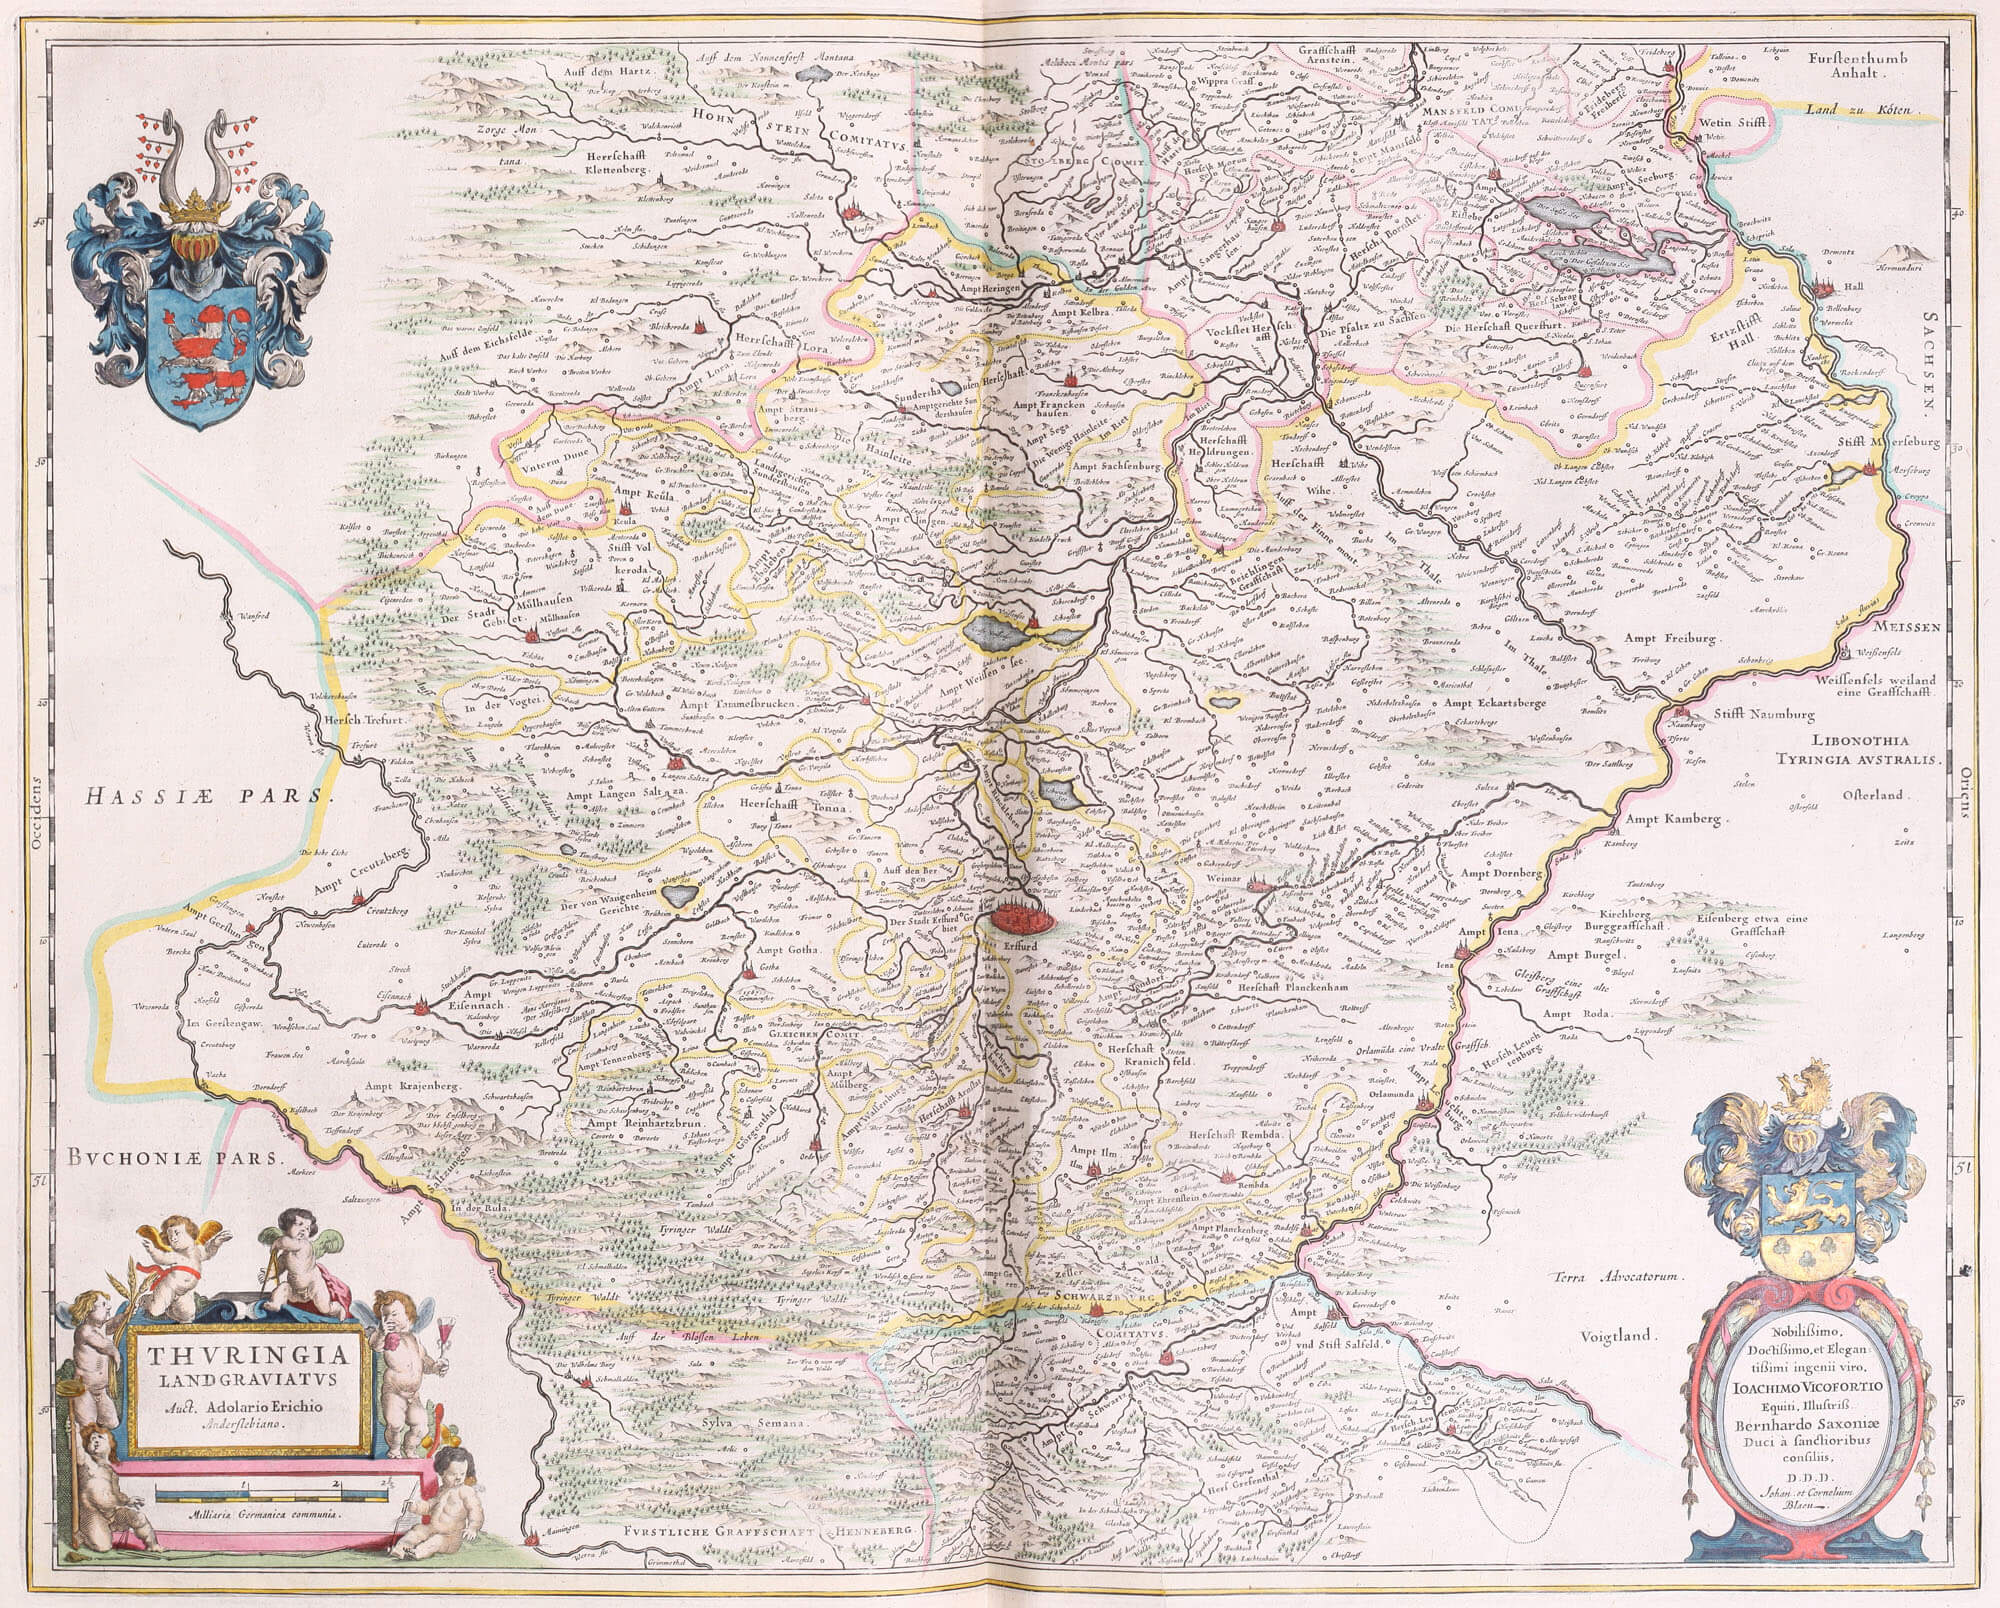 Atlas Maior Vol 3 Z124Germany Part 1 Maps 145 L Brown Collection